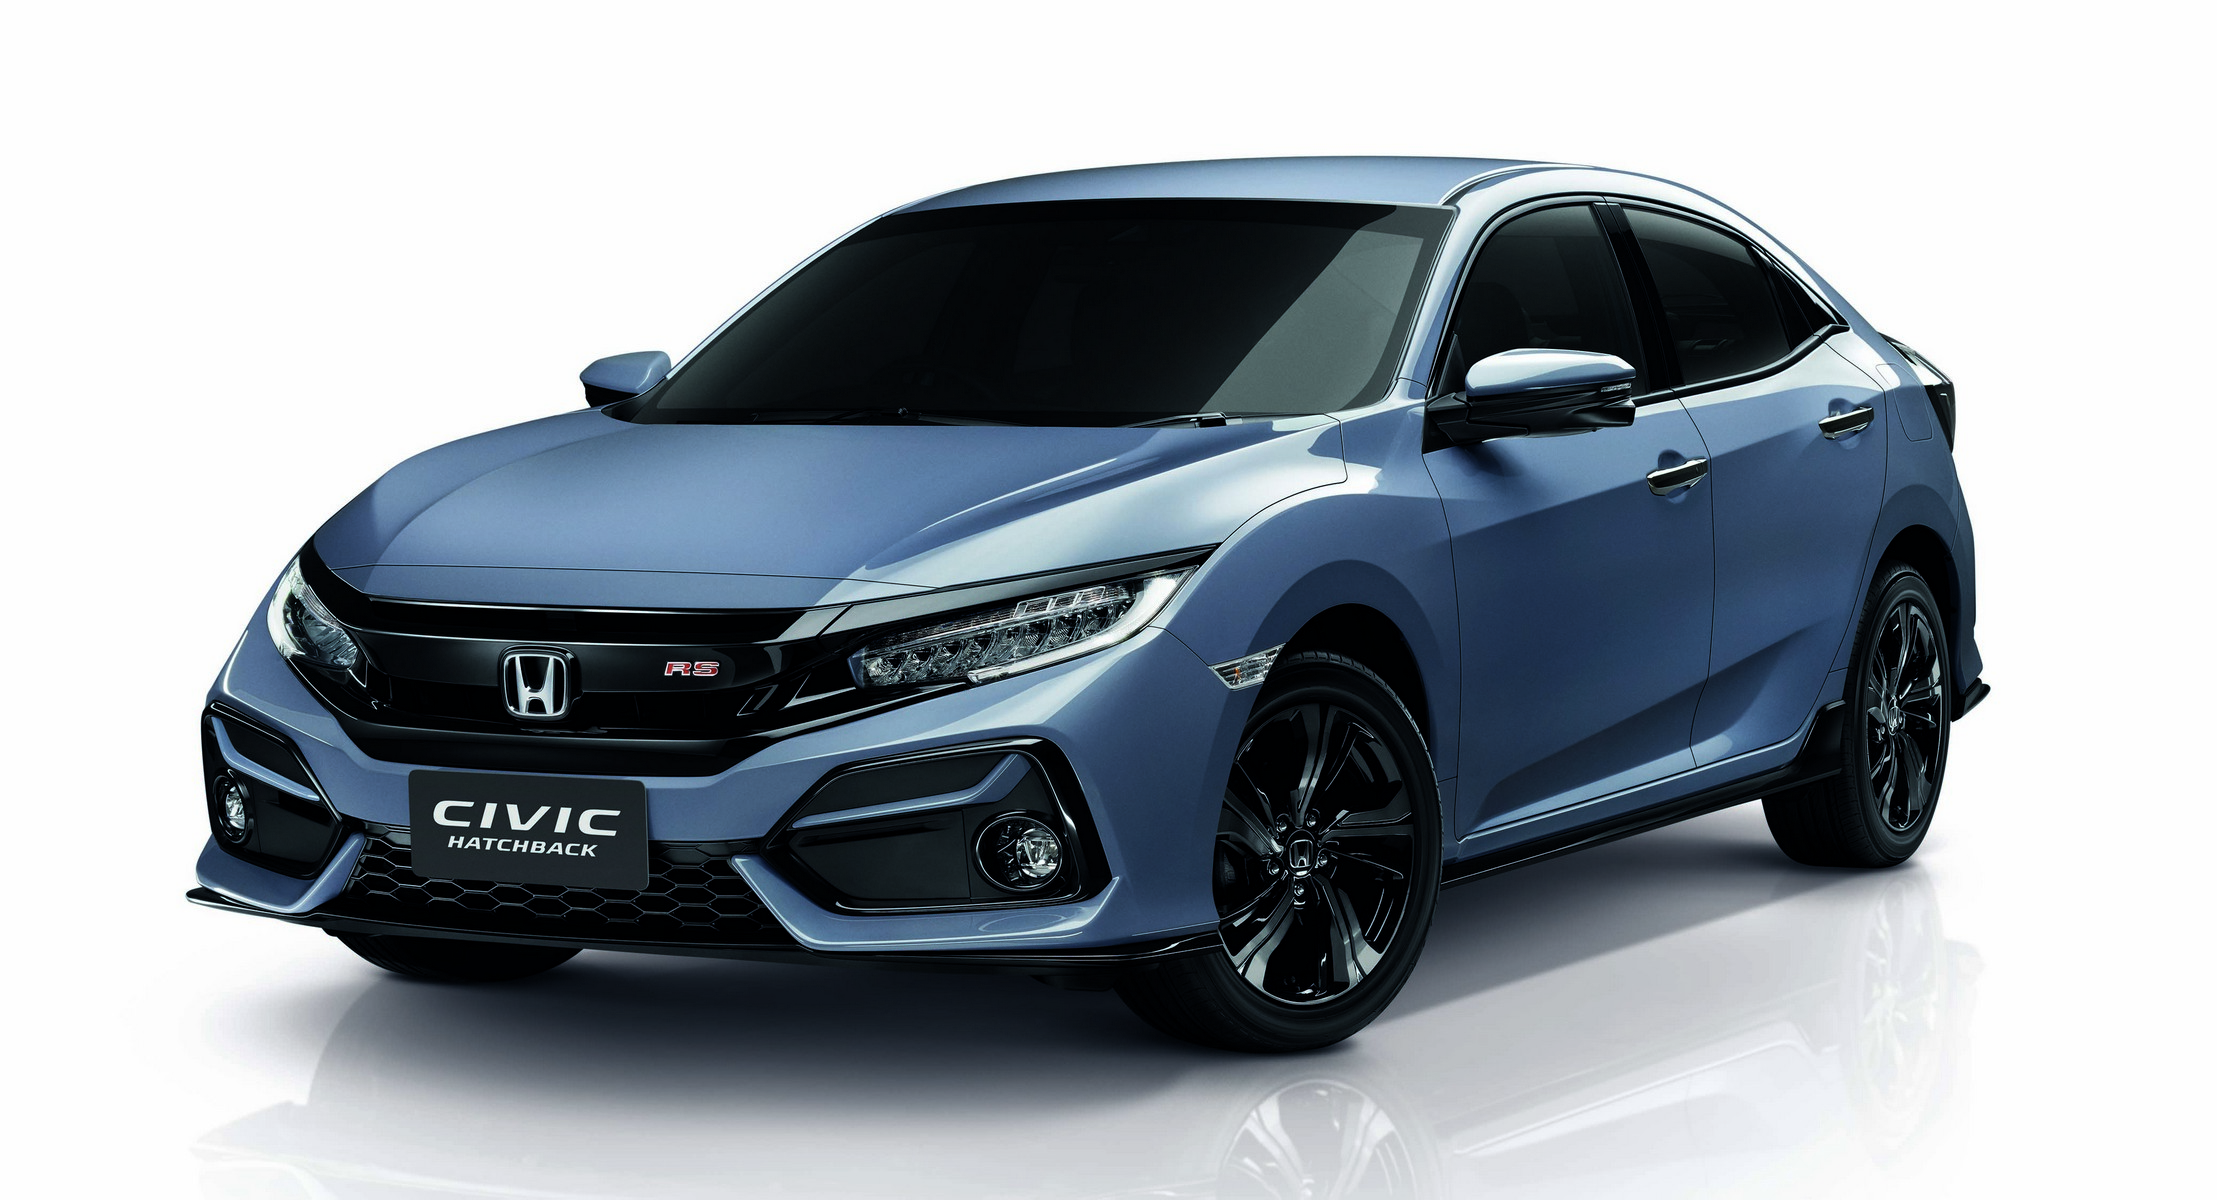 New-Civic-Hatchback-RS_Front.jpg